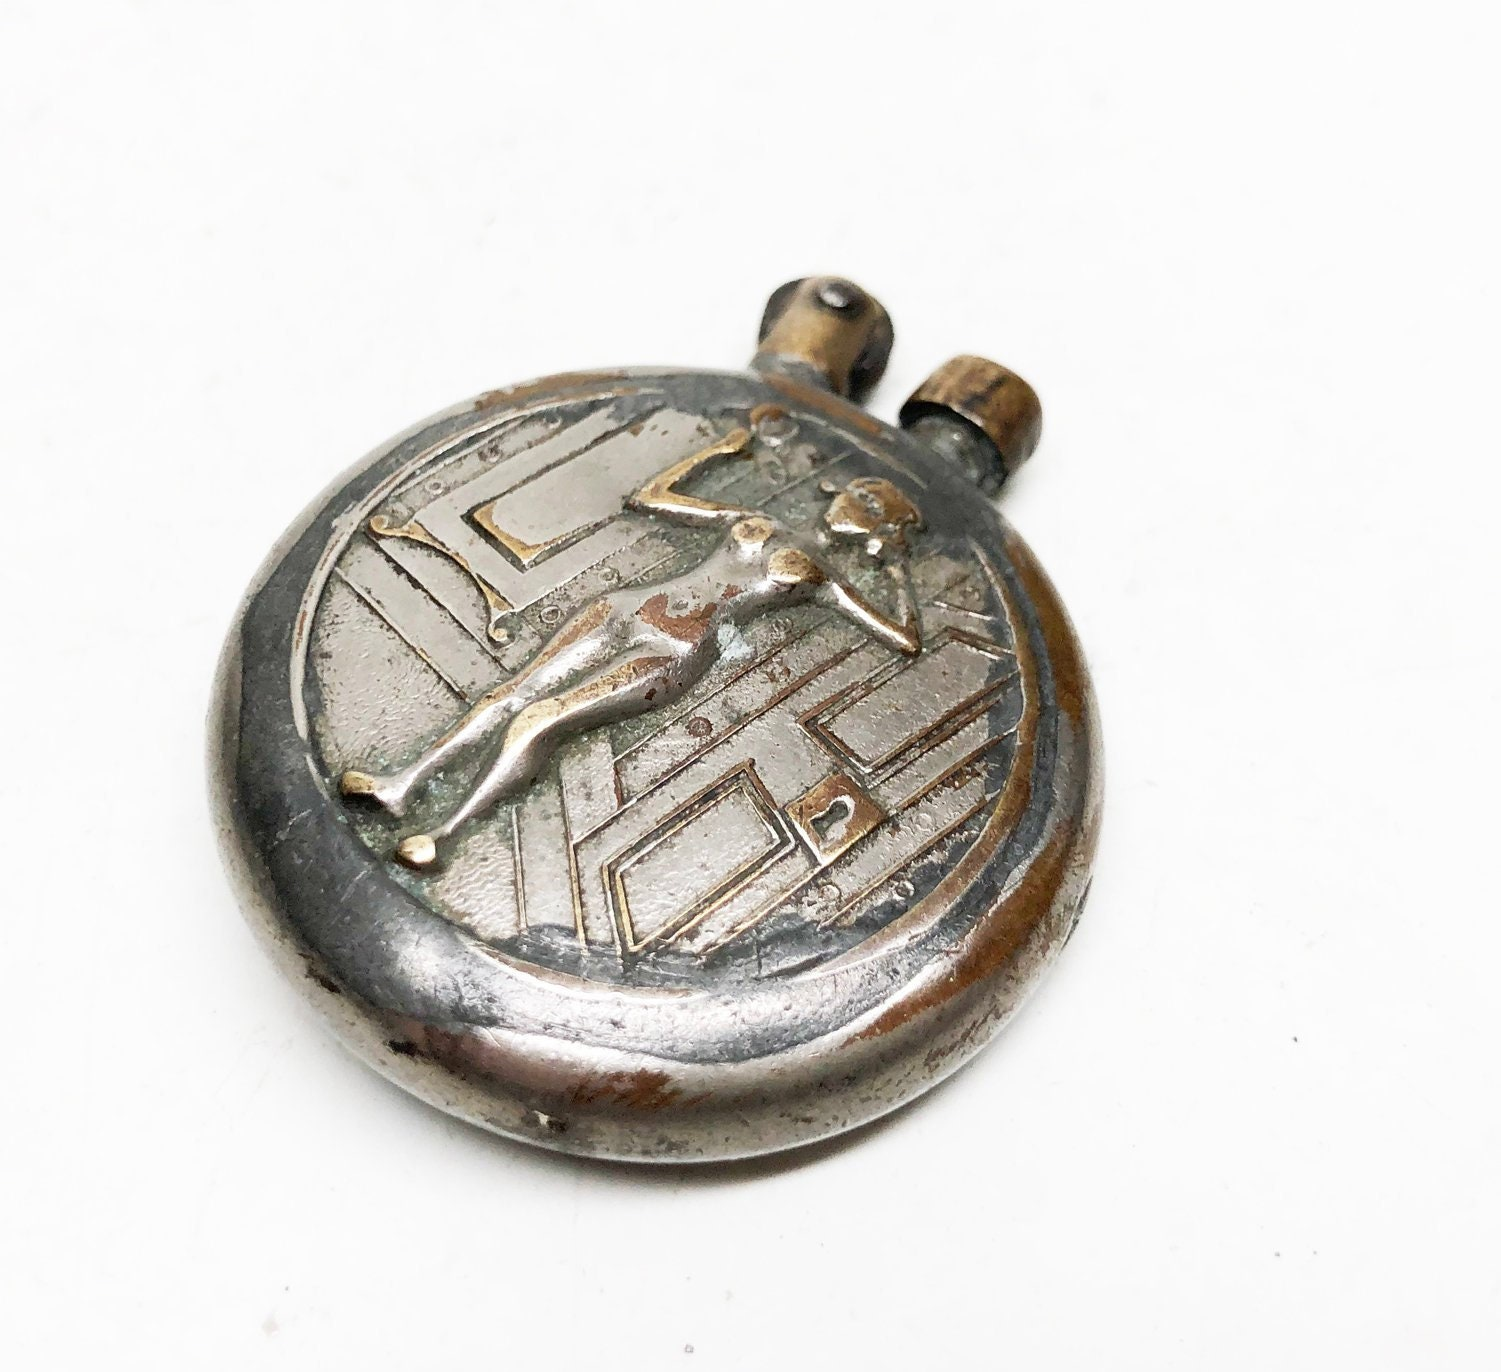 ANTIQUE TRENCH LIGHTER - Working Brass Old Risque